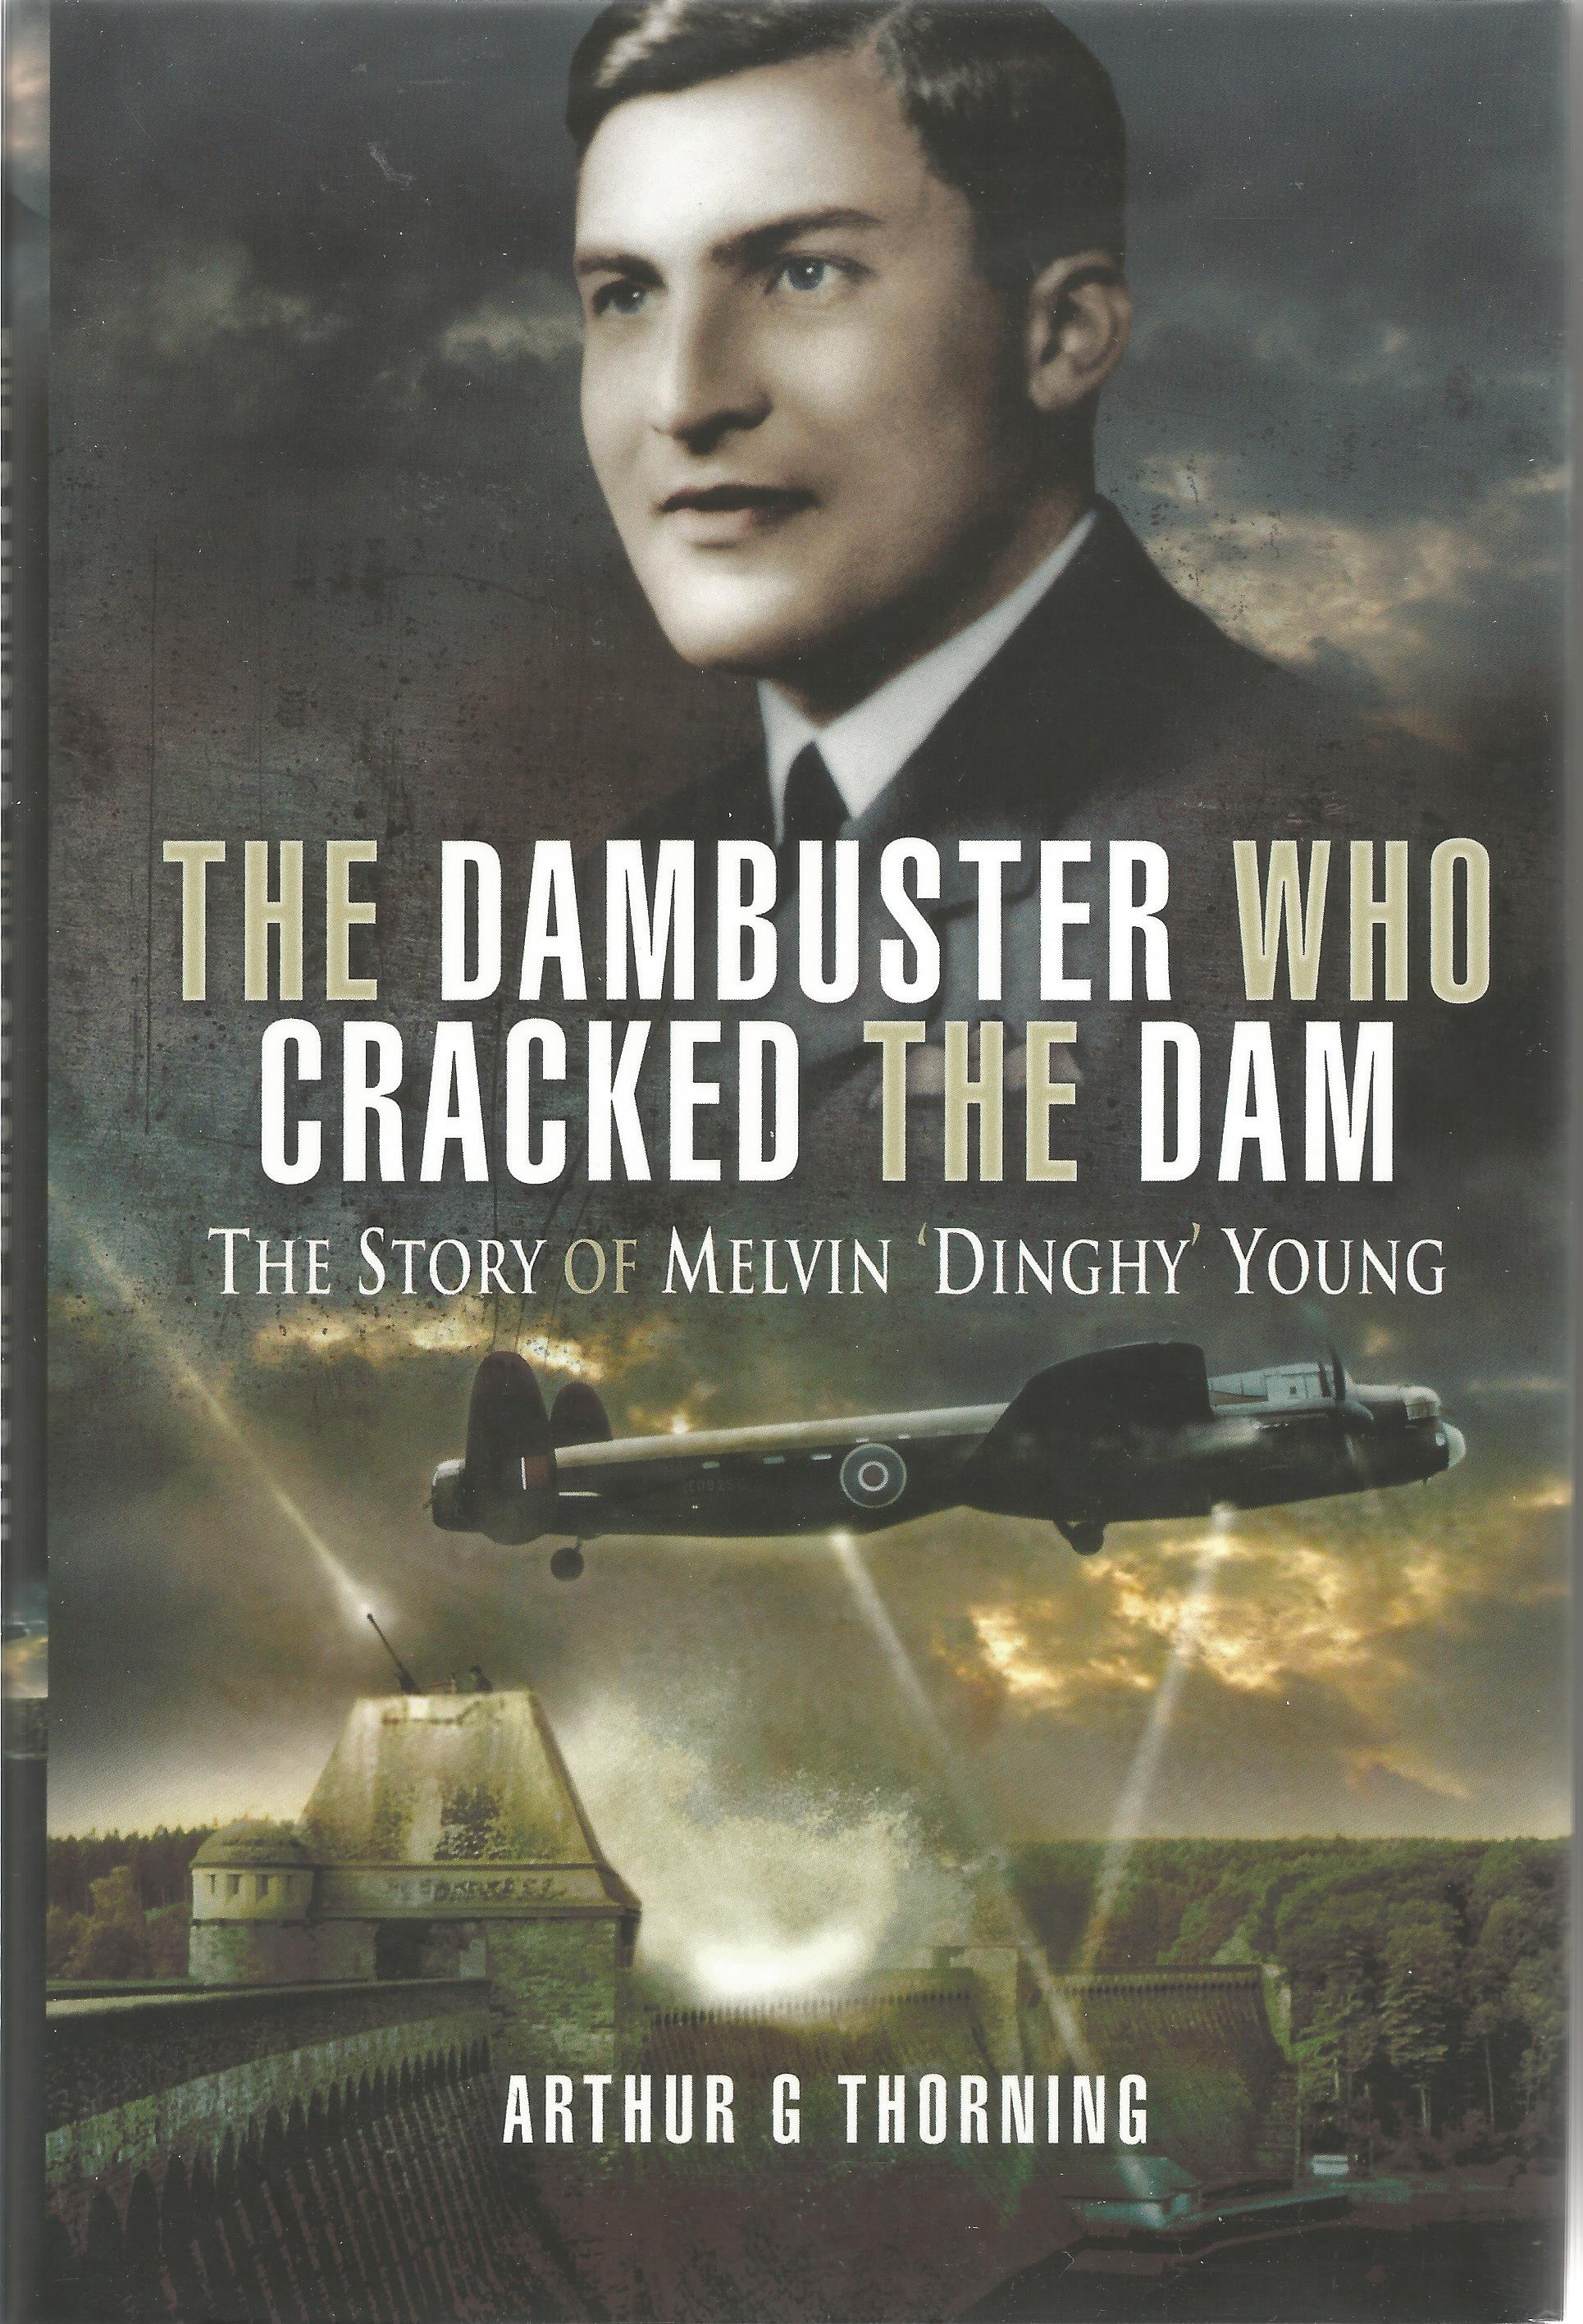 Arthur G Thorning. The Dambuster Who Cracked The Dam the story of Melvin Dinghy Young. A WW2 First